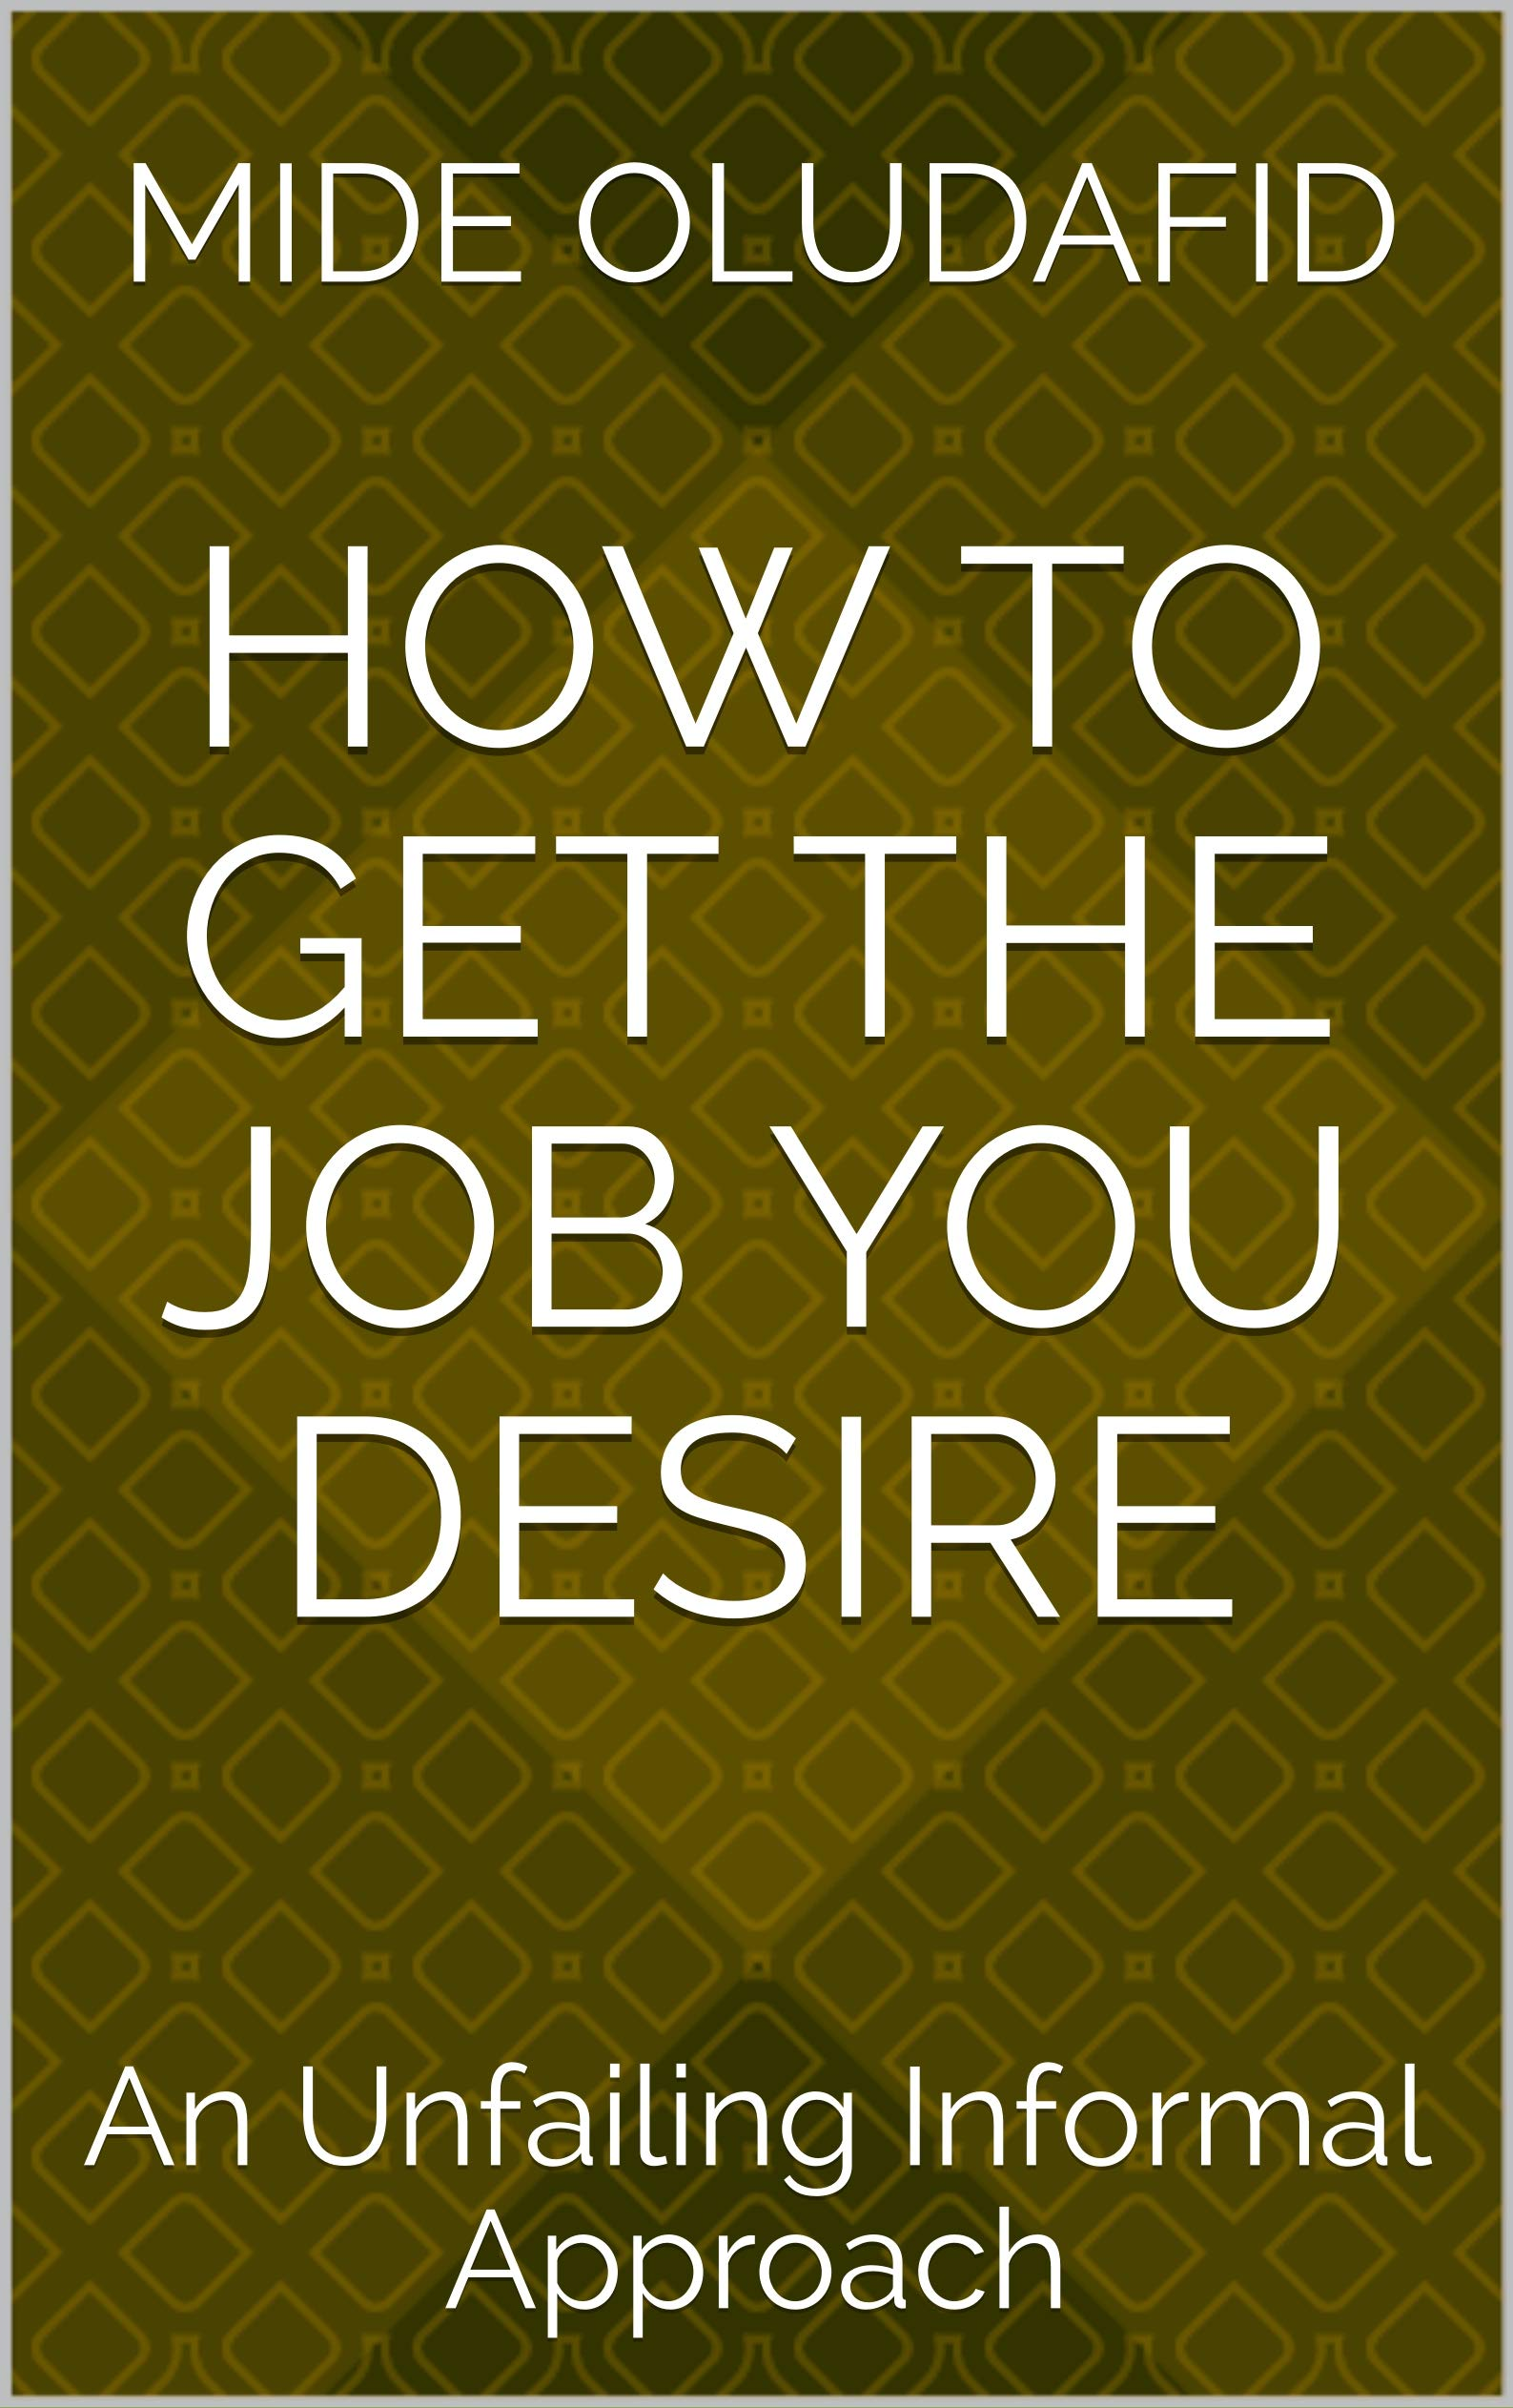 HOW TO GET THE JOB YOU DESIRE: An Unfailing Informal Approach